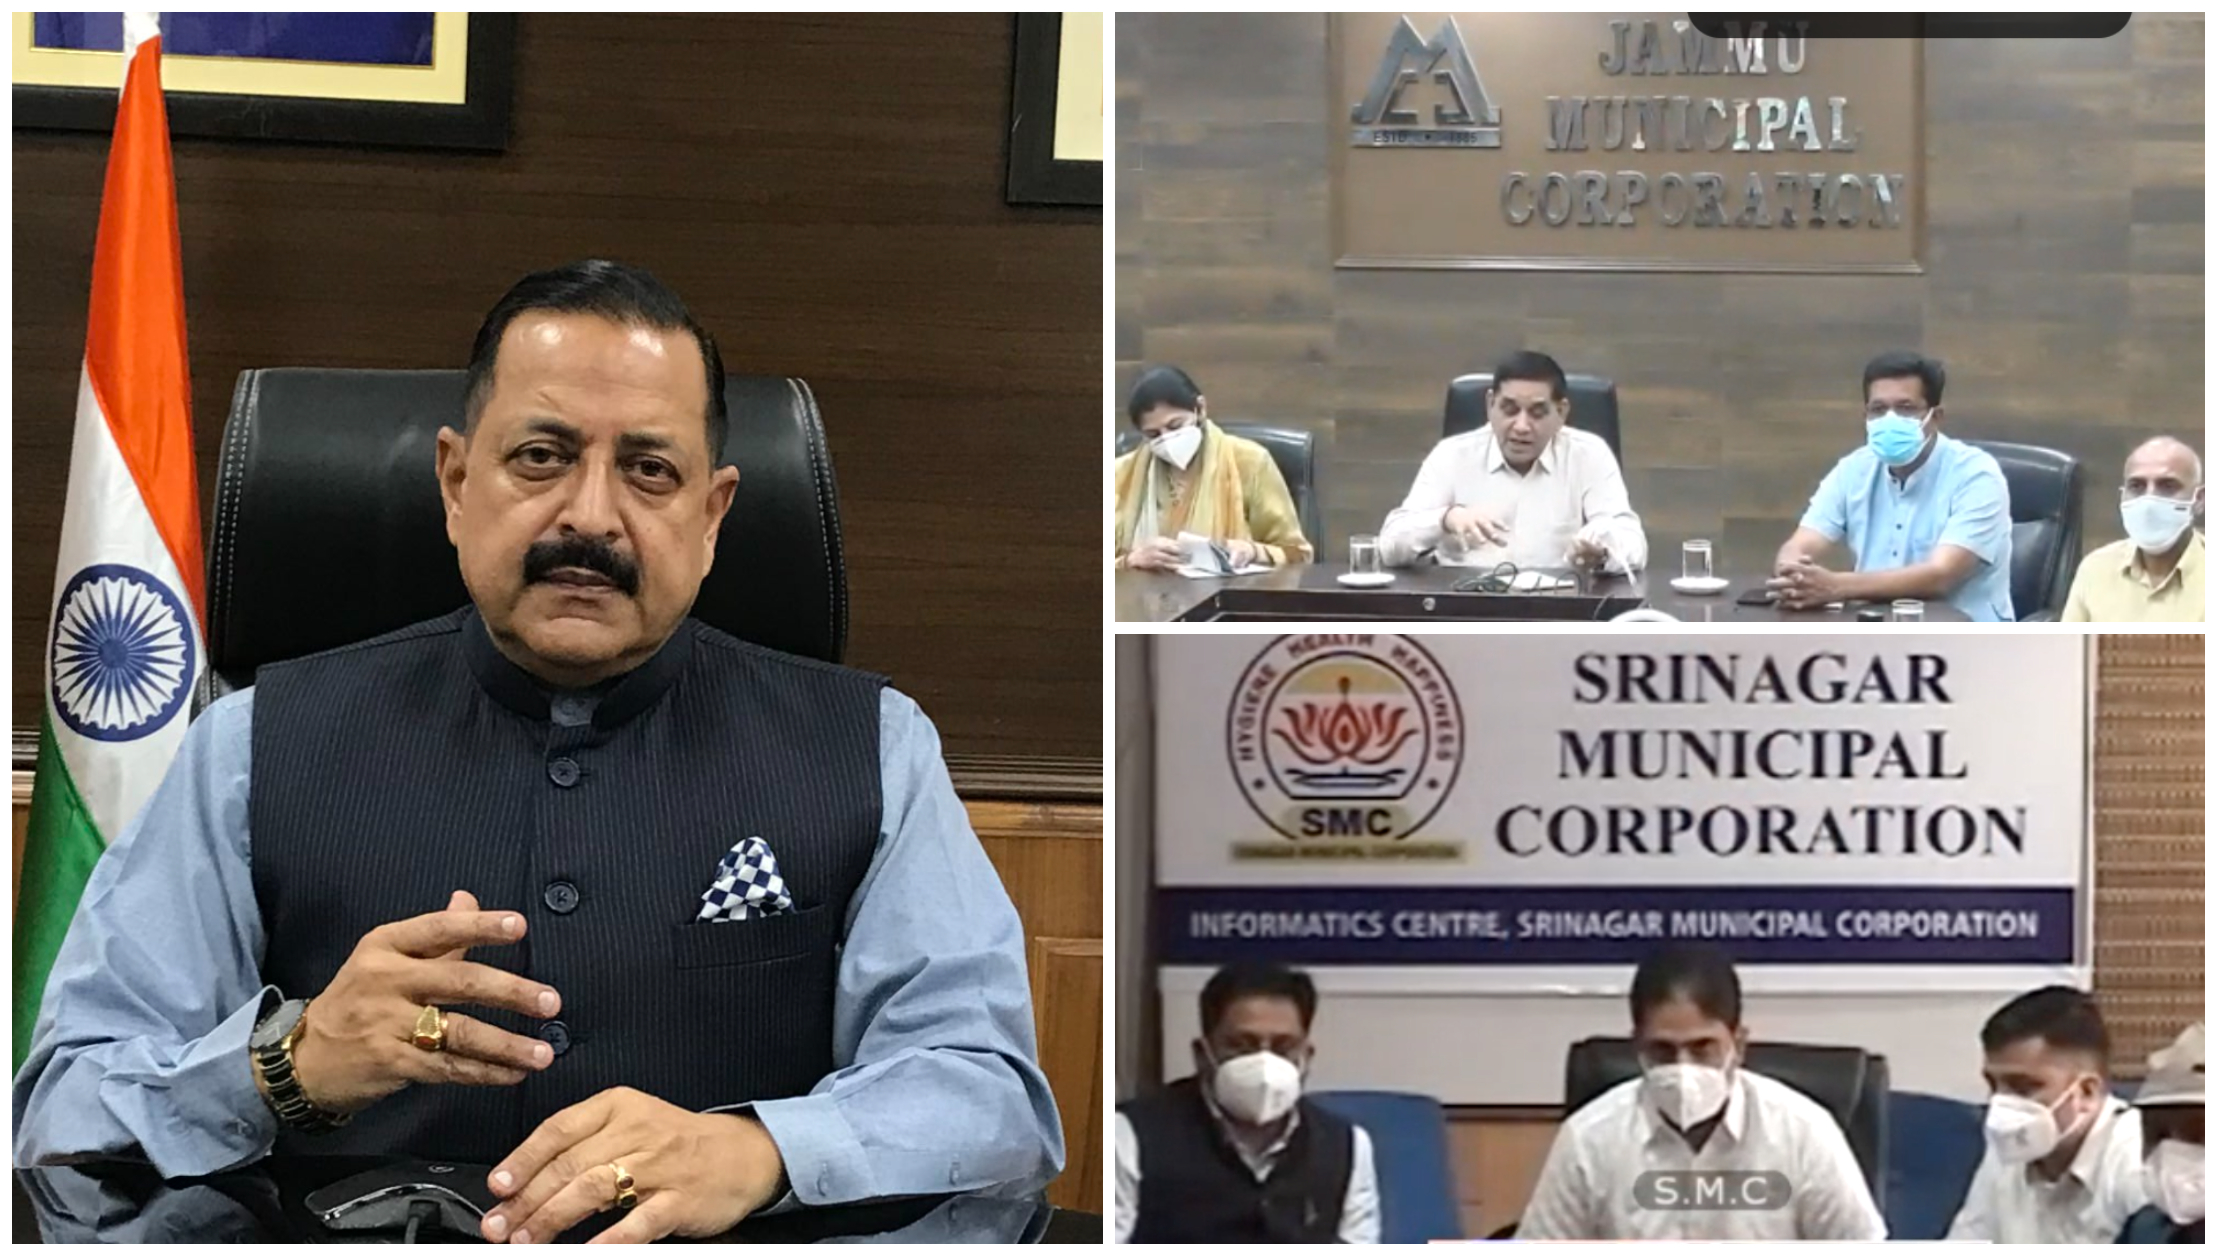 Union Minister Dr. Jitendra Singh says, Elected Representatives must augment vaccination drive in Jammu and Kashmir in a people-friendly manner